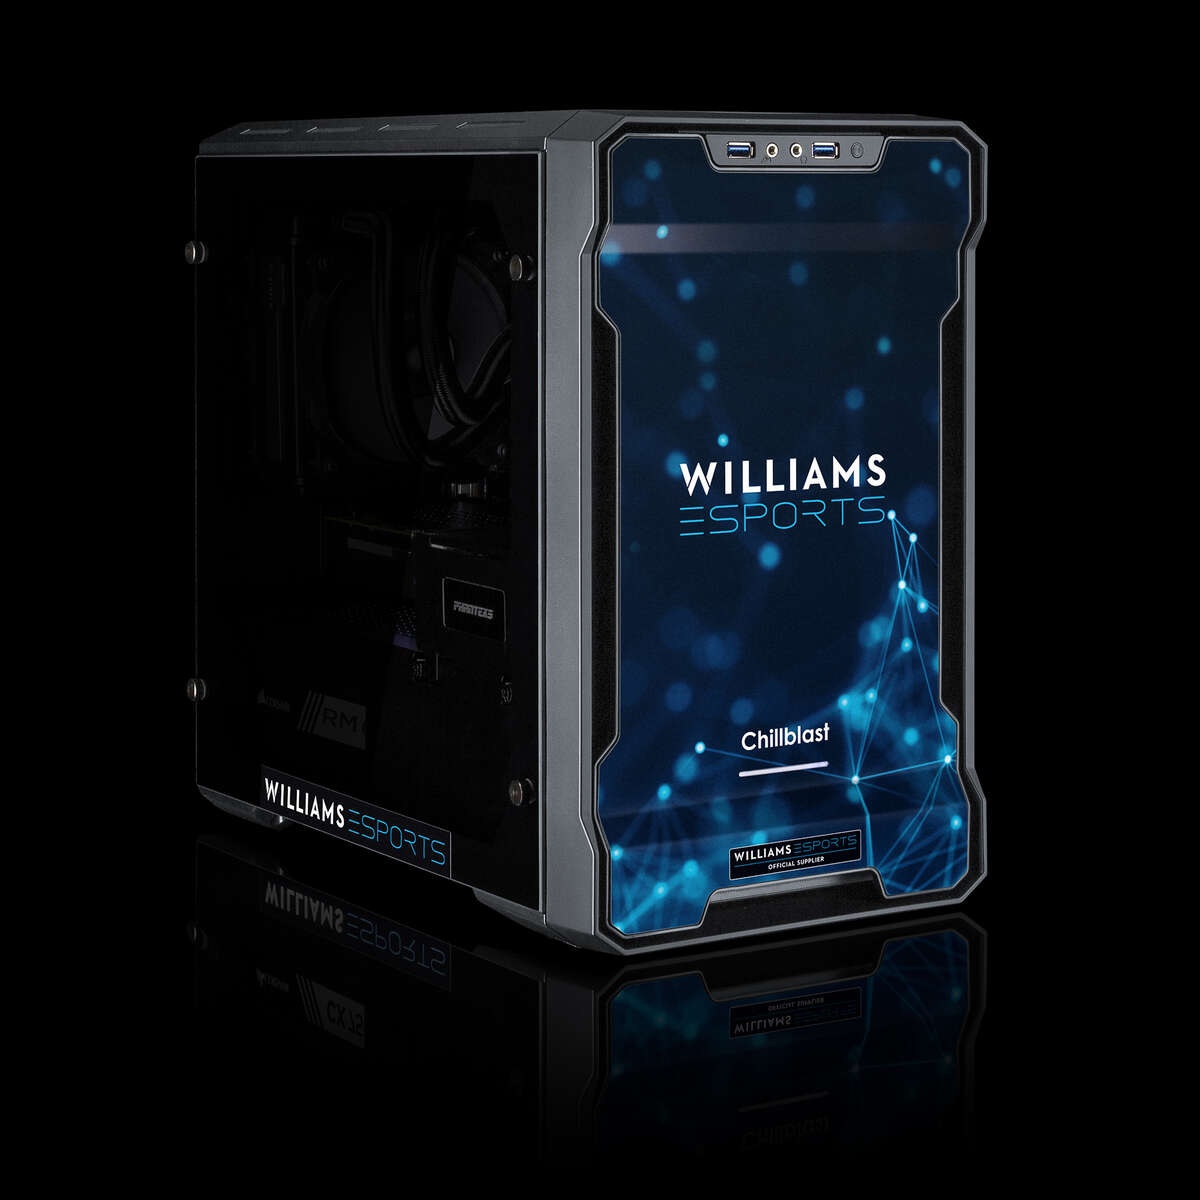 PRE-ORDER - Chillblast Official Williams Esports Ultimate Gaming PC